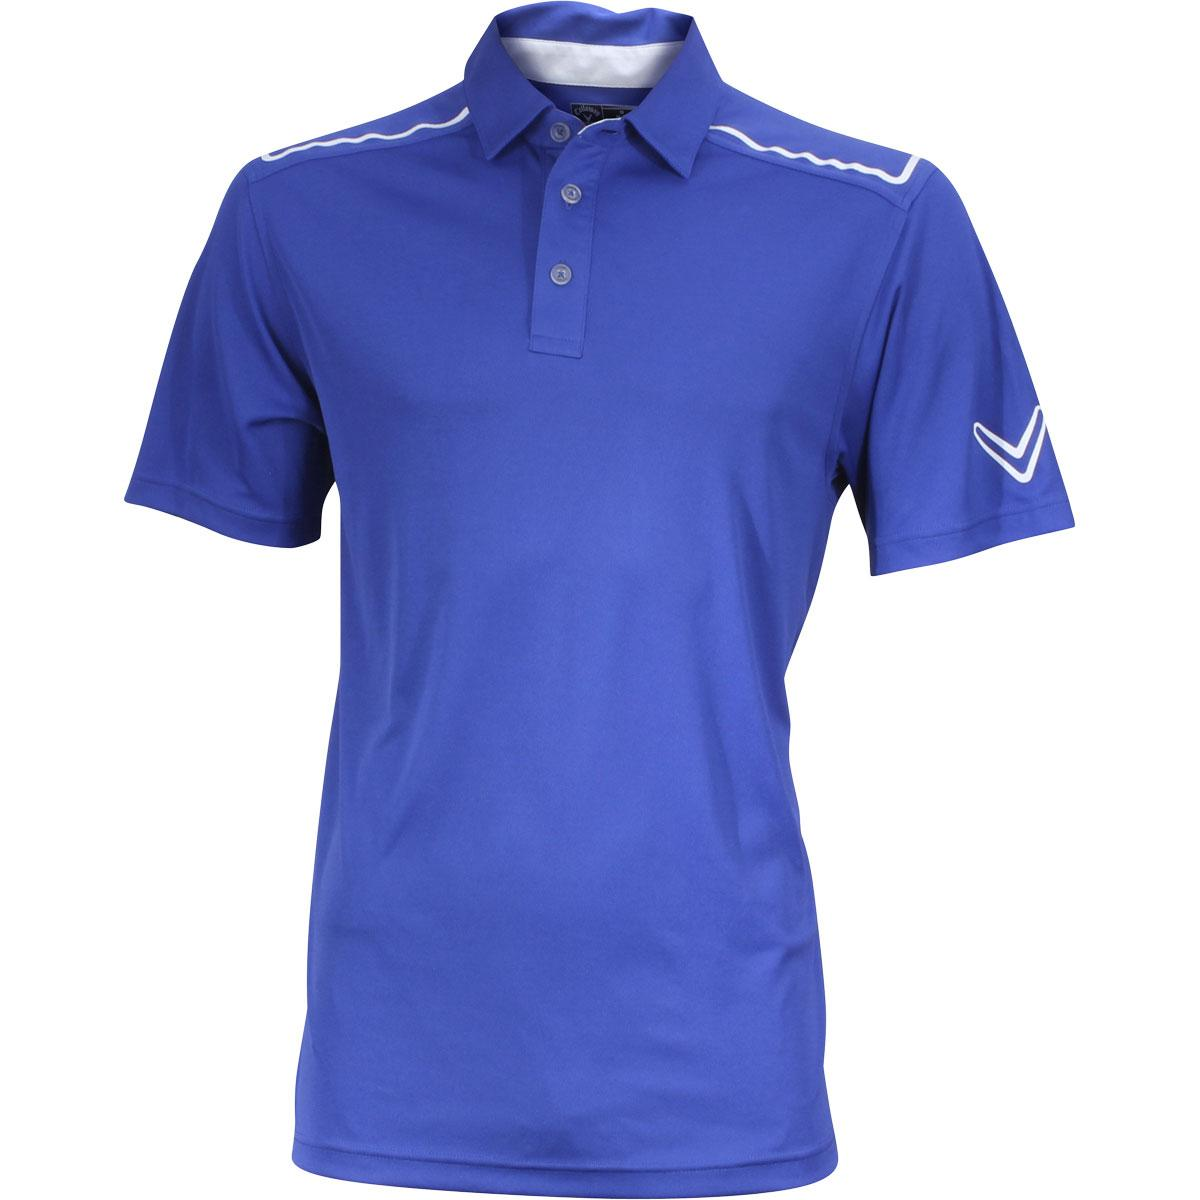 Image of Callaway Men's Solid Blocked Polo Short Sleeve Shirt - Deep Ultra Marine - Classic Fit